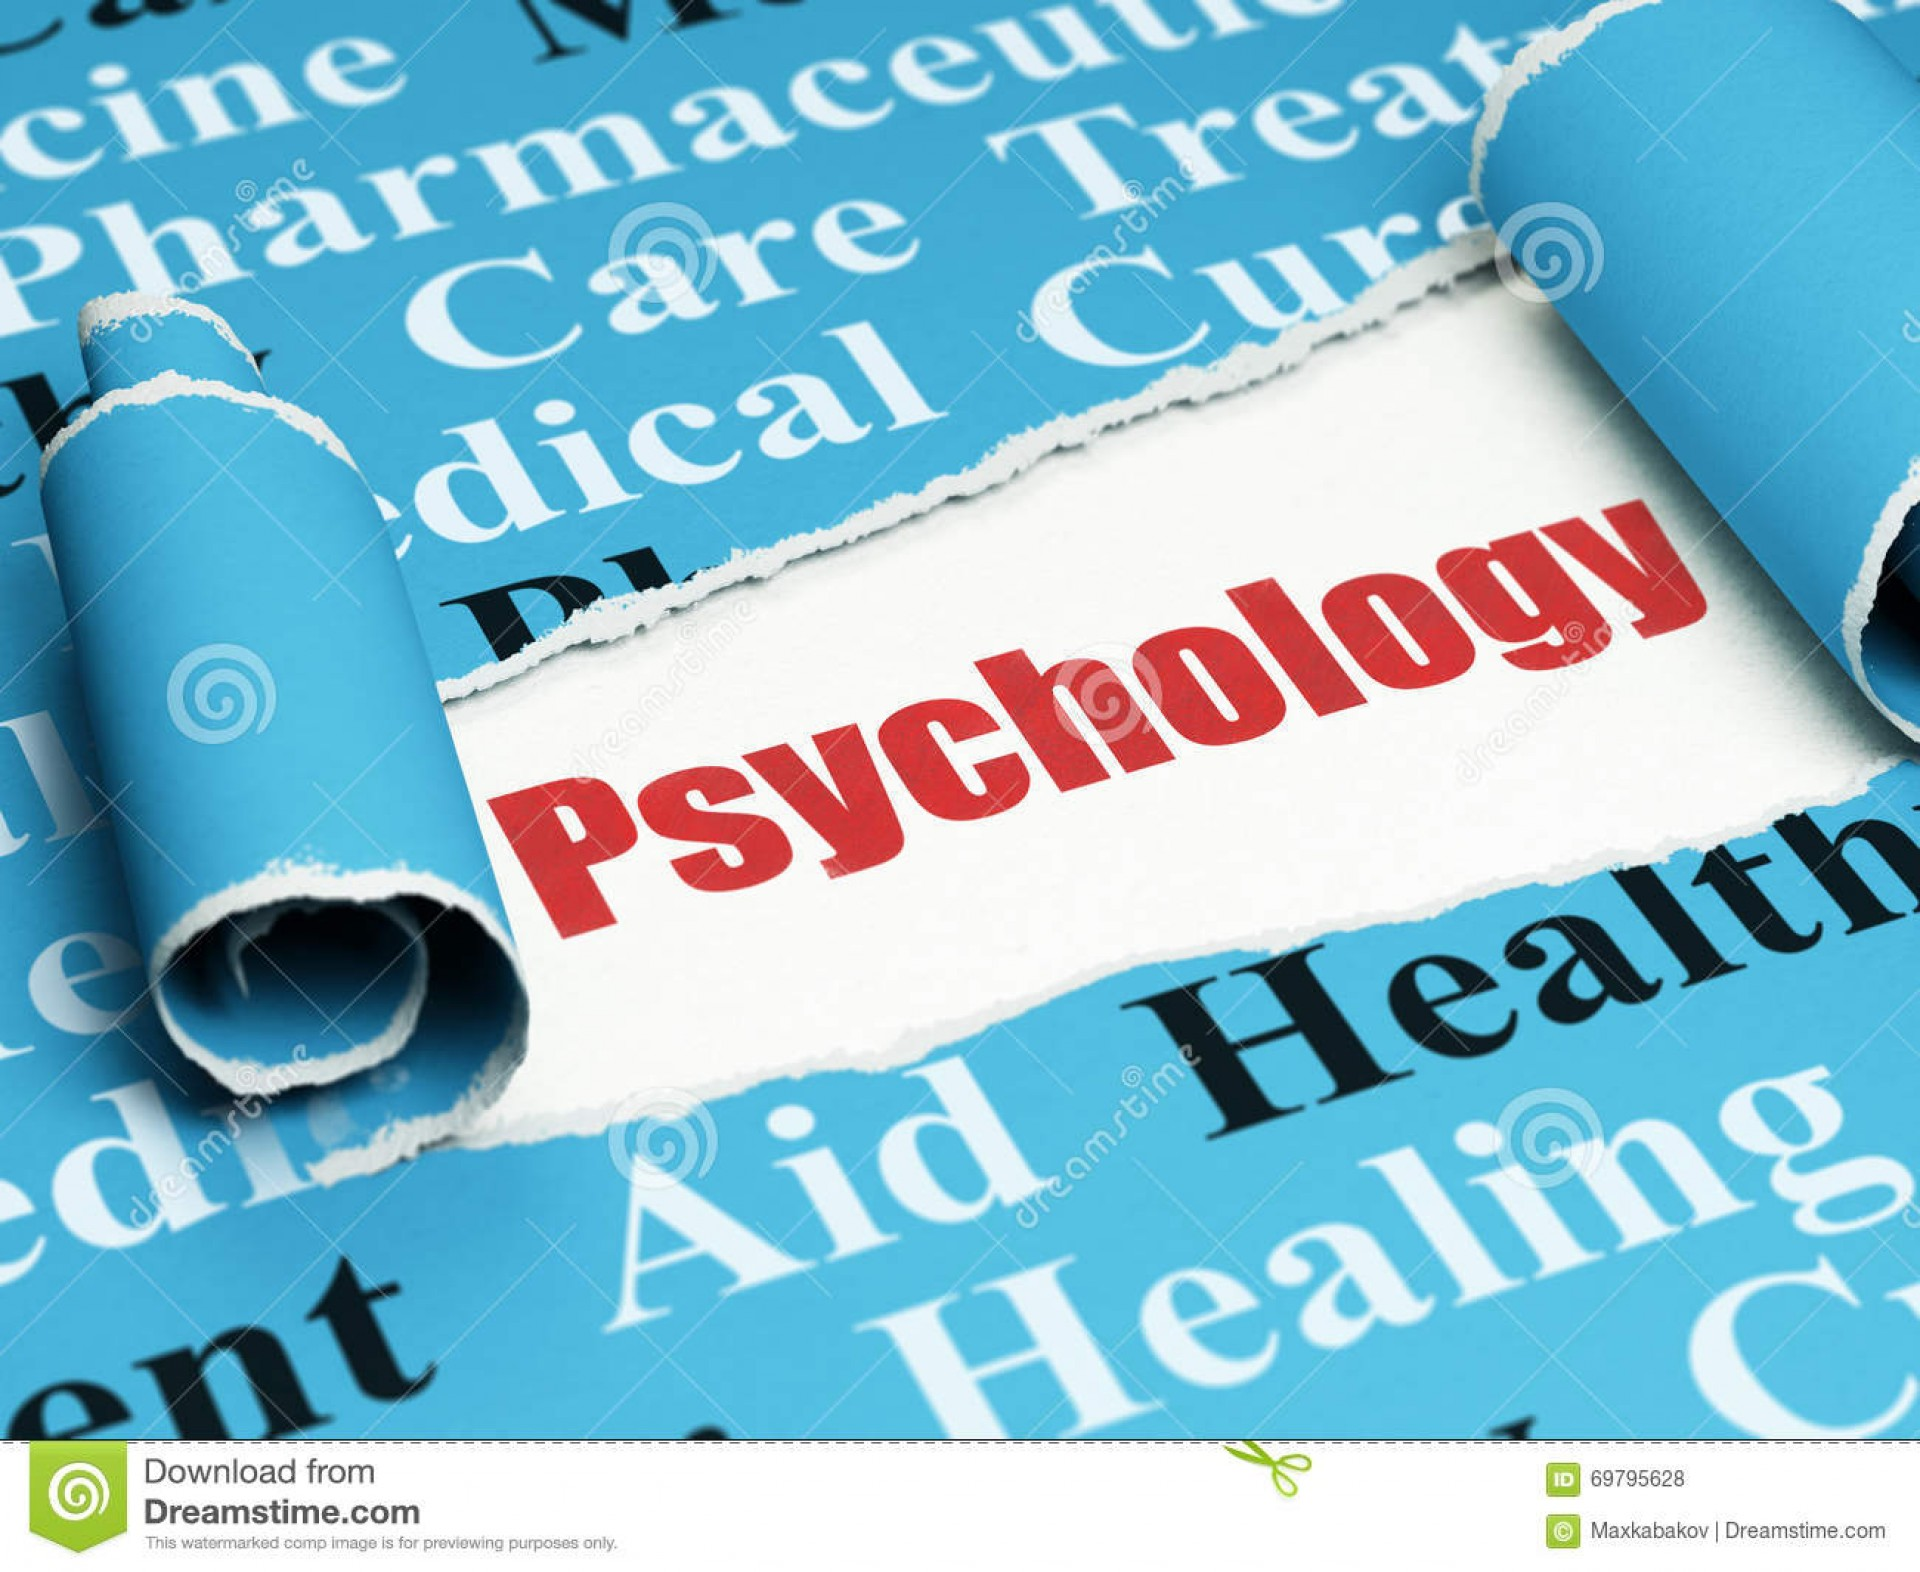 010 Research Paper Psychology On Dreams Health Concept Red Text Under Piece Torn Curled Blue Tag Cloud Rendering Singular Questions Topics 1920